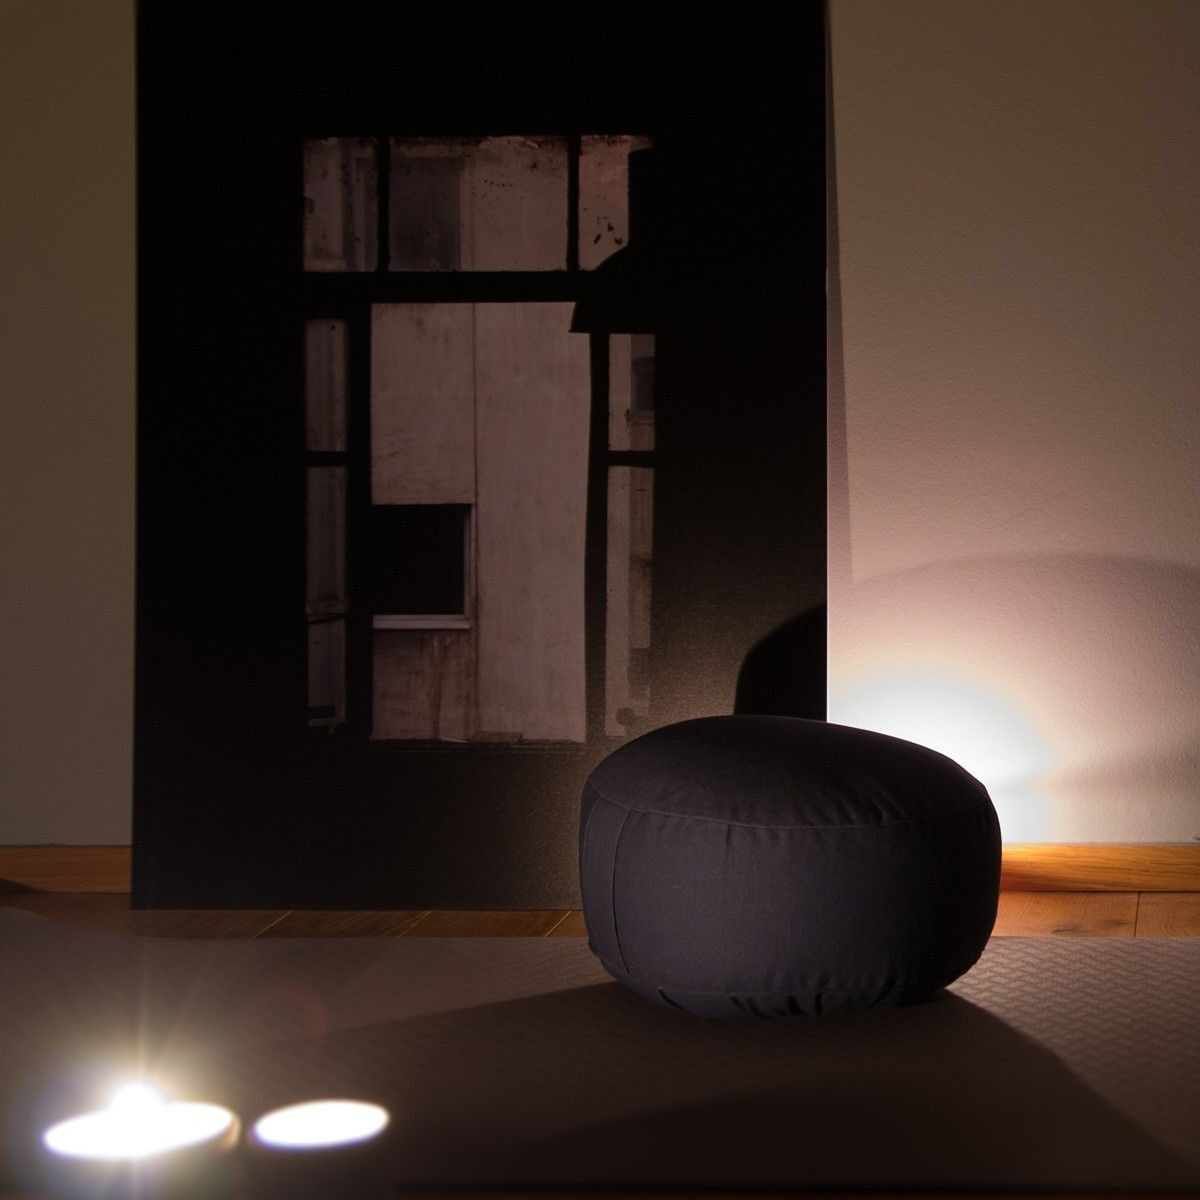 My beautiful meditation pillow and yogamat in my little studio